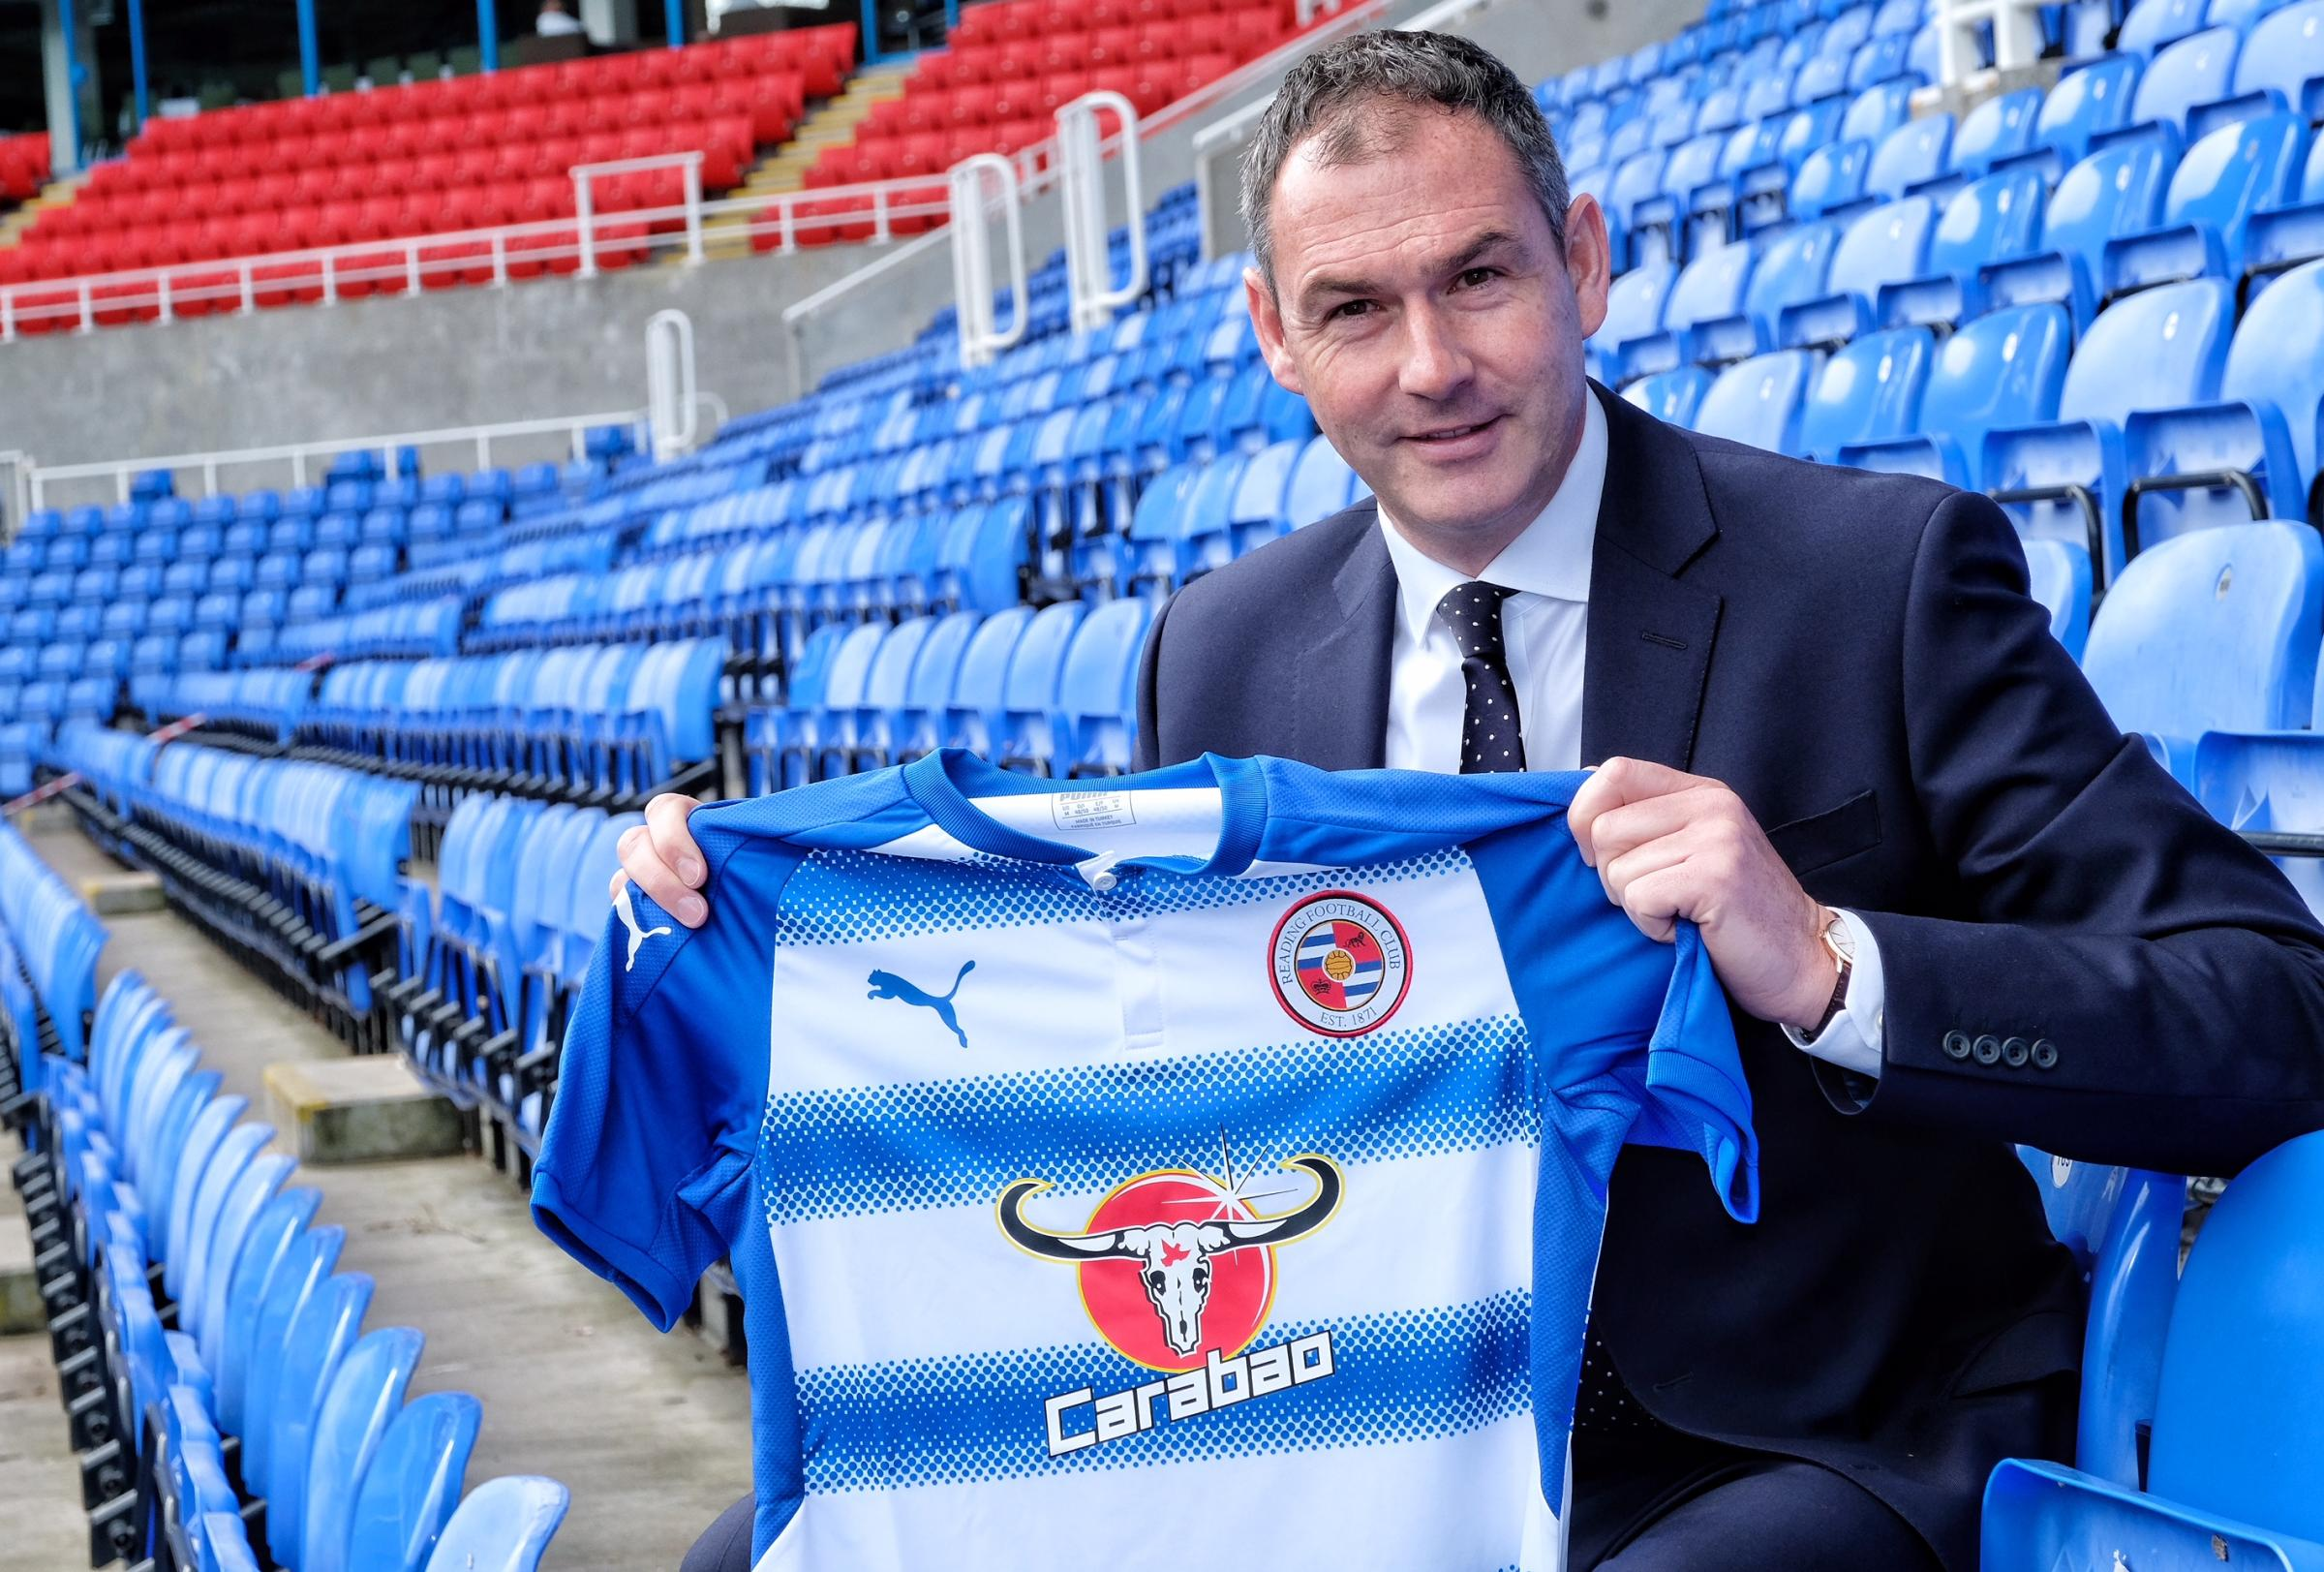 Paul Clement has joined Reading FC as manager following Jaap Stam's departure